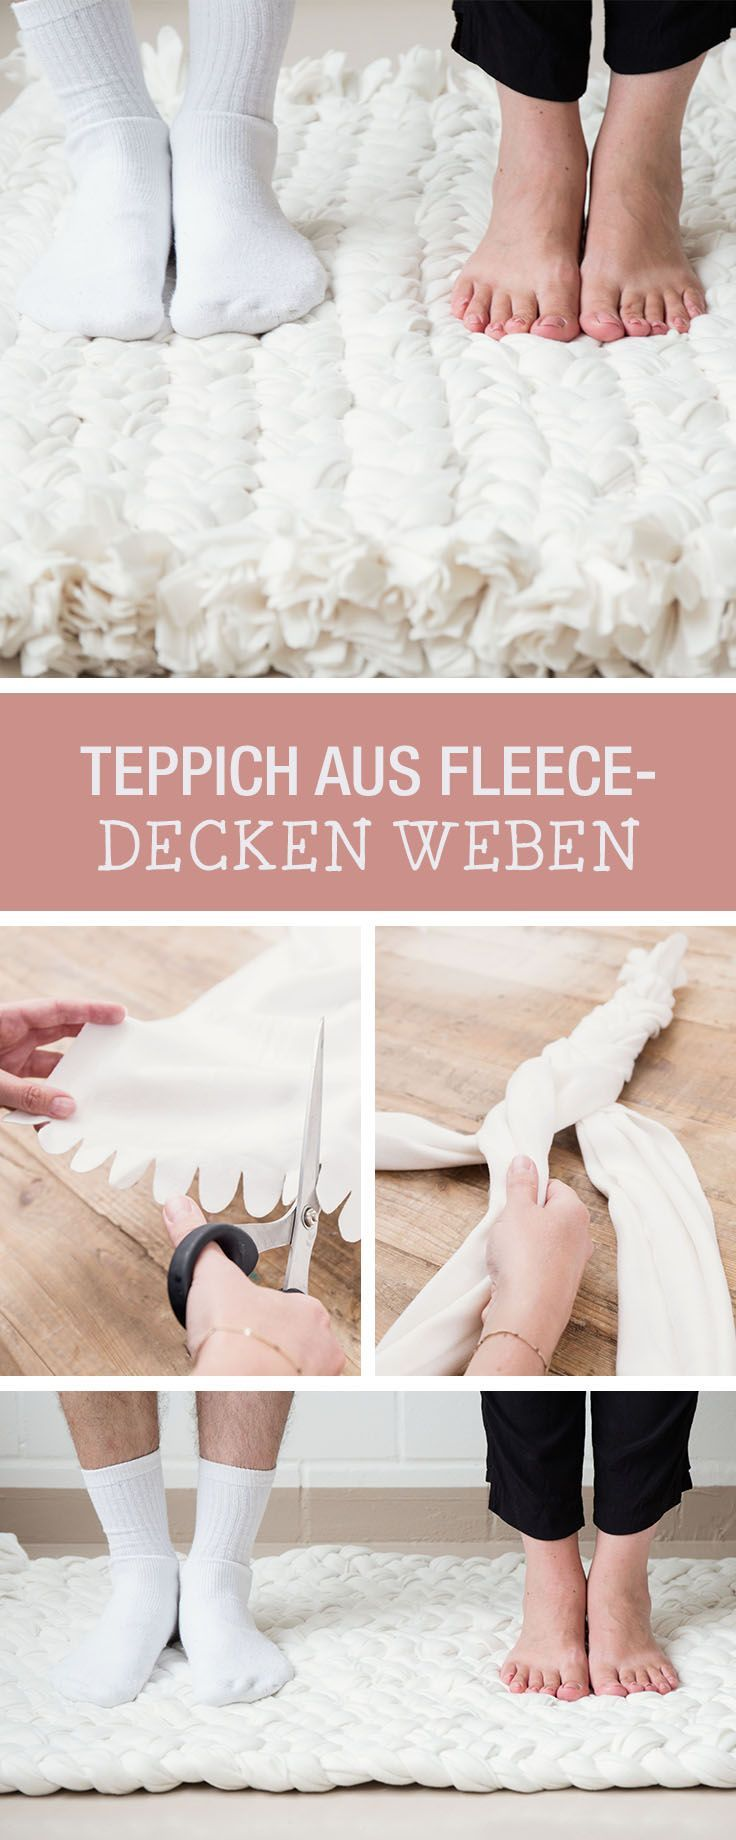 diy anleitung upcycling teppich aus fleece decken weben. Black Bedroom Furniture Sets. Home Design Ideas